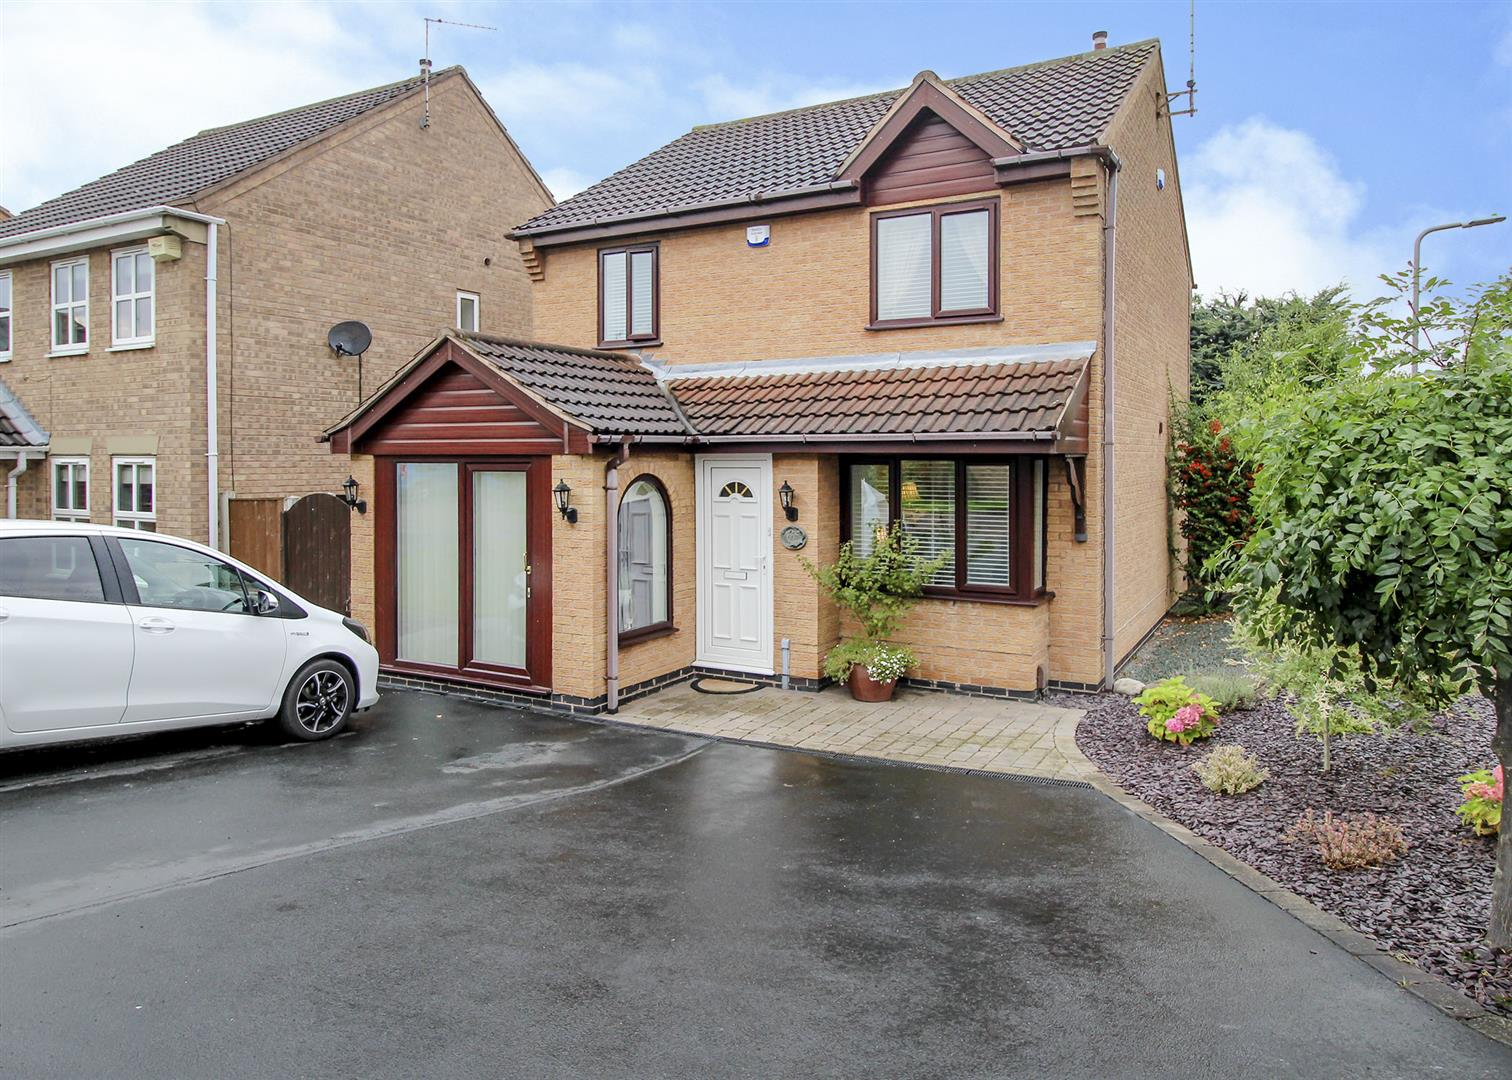 3 Bedrooms Detached House for sale in Trowell Park Drive, Trowell